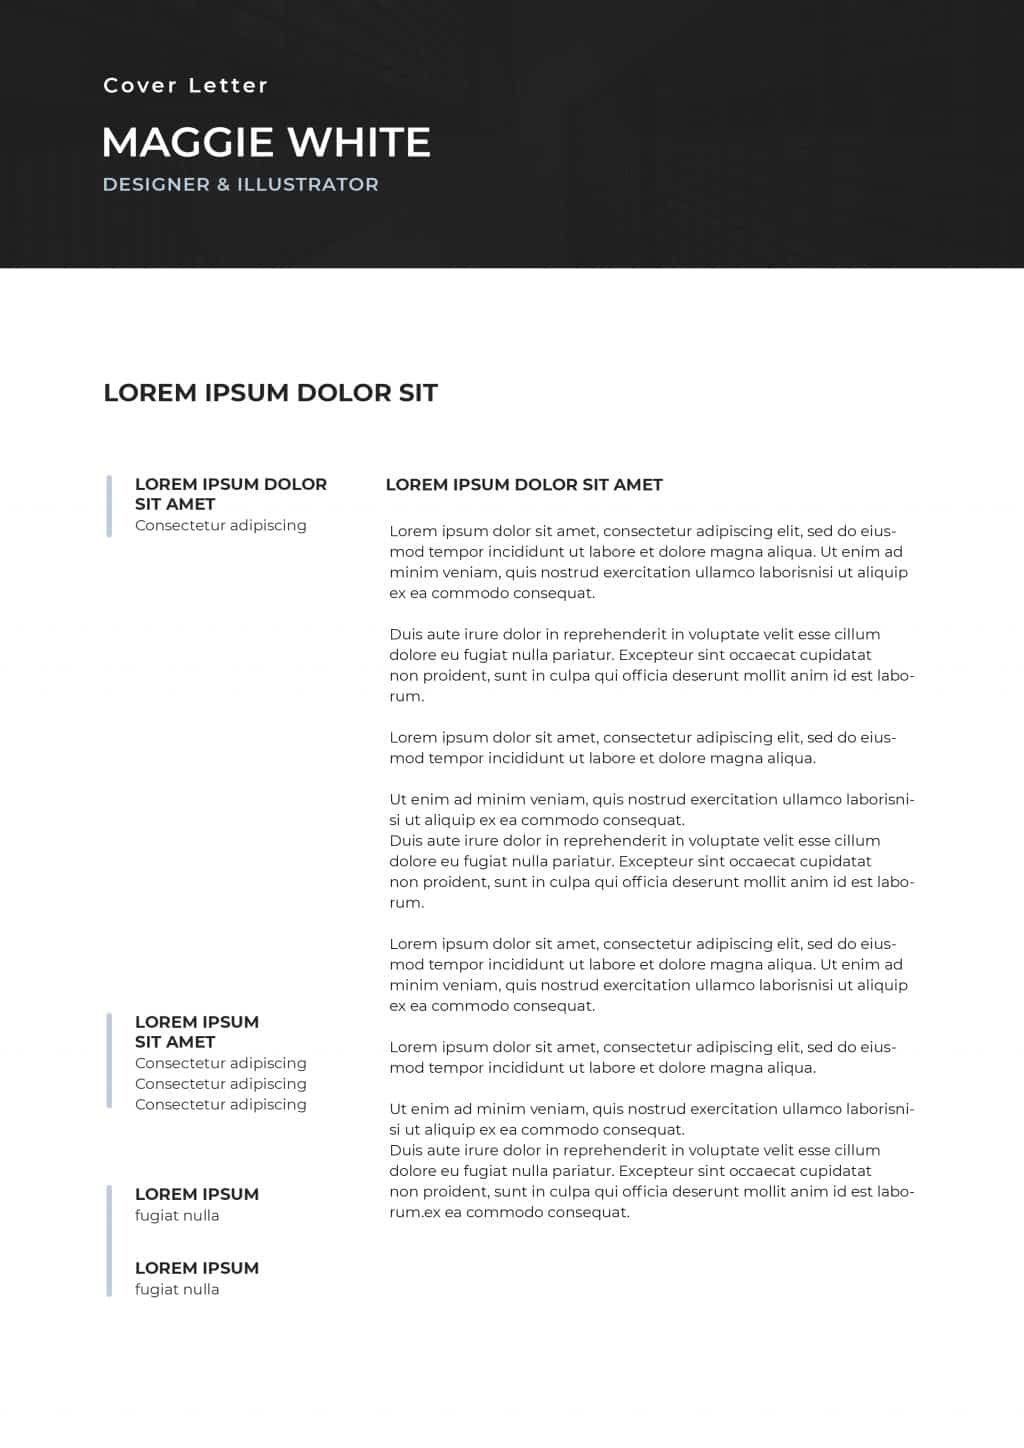 Best College Resume Templates 2020: 5 colors - $8 - cover letter 2